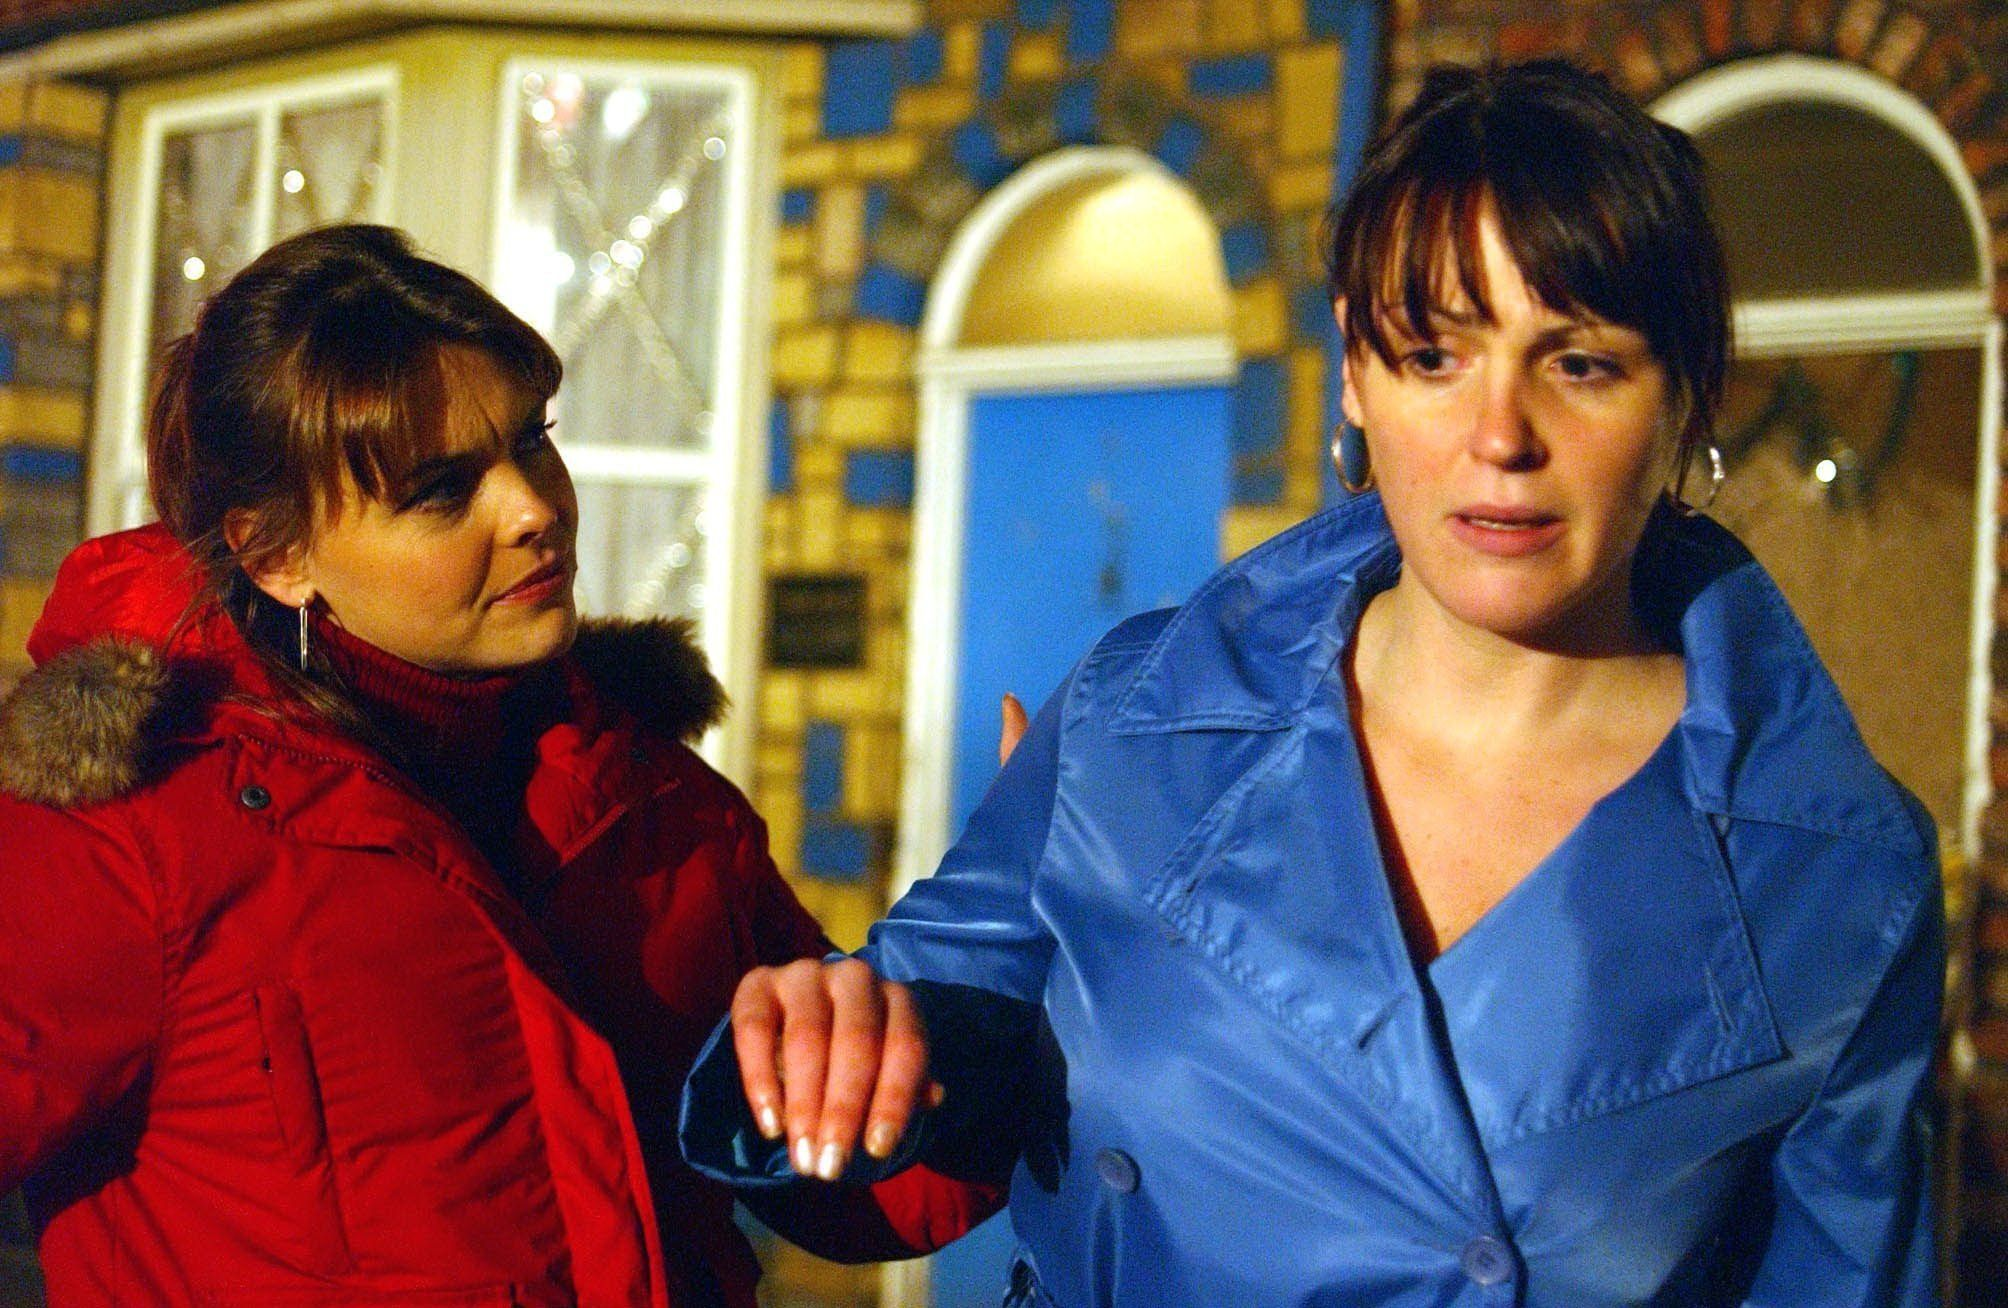 Suranne Jones is up for a return as Karen McDonald